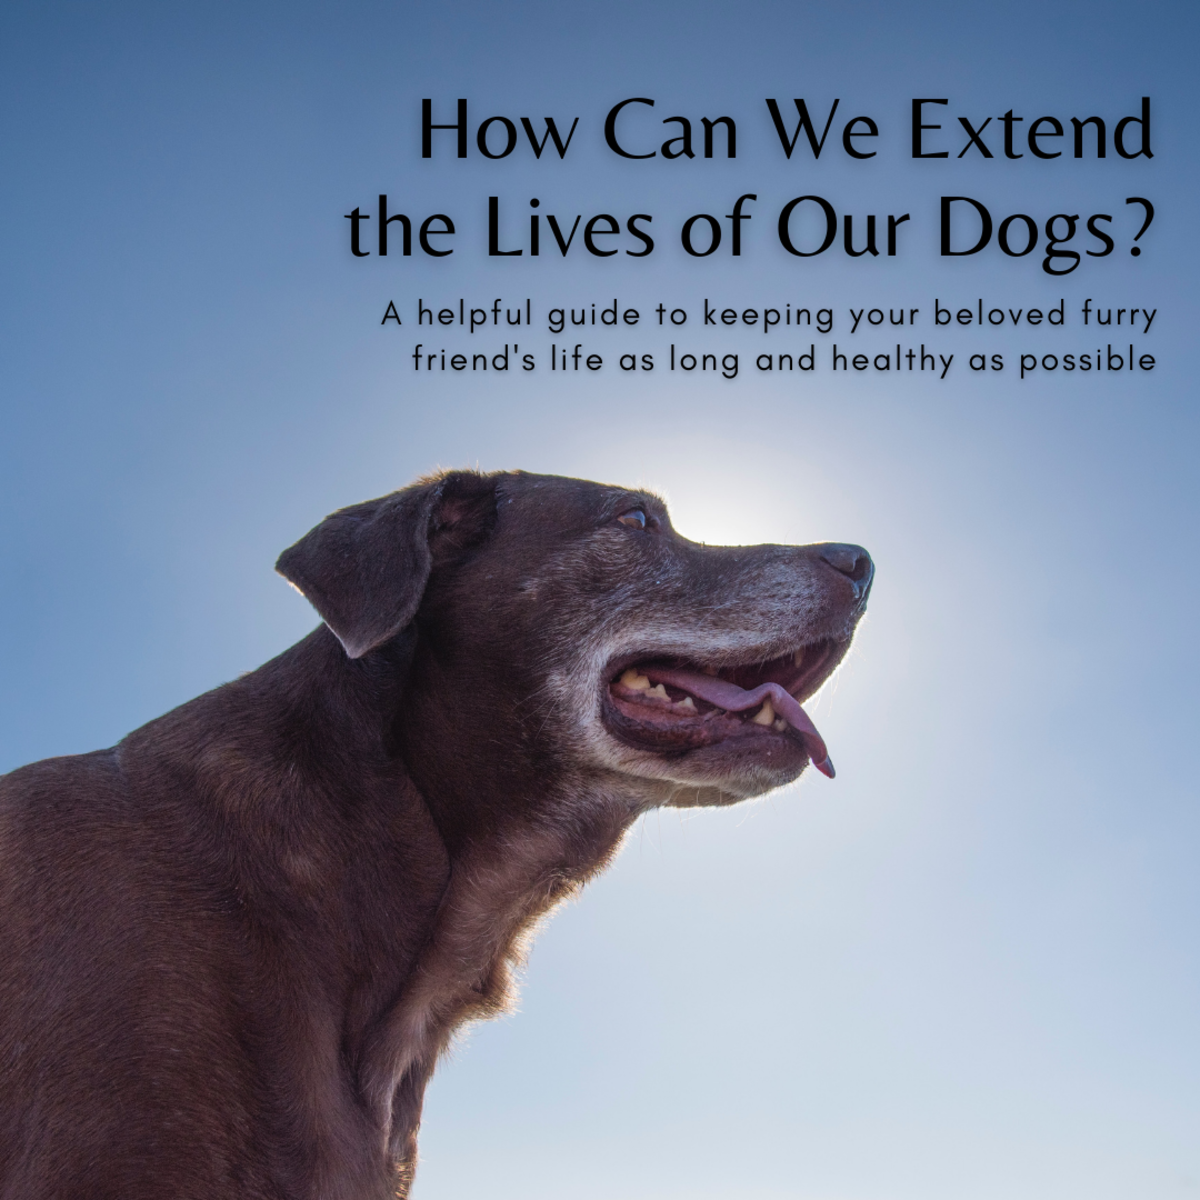 This article will break down how you can help extend the lives of your beloved furry companions.